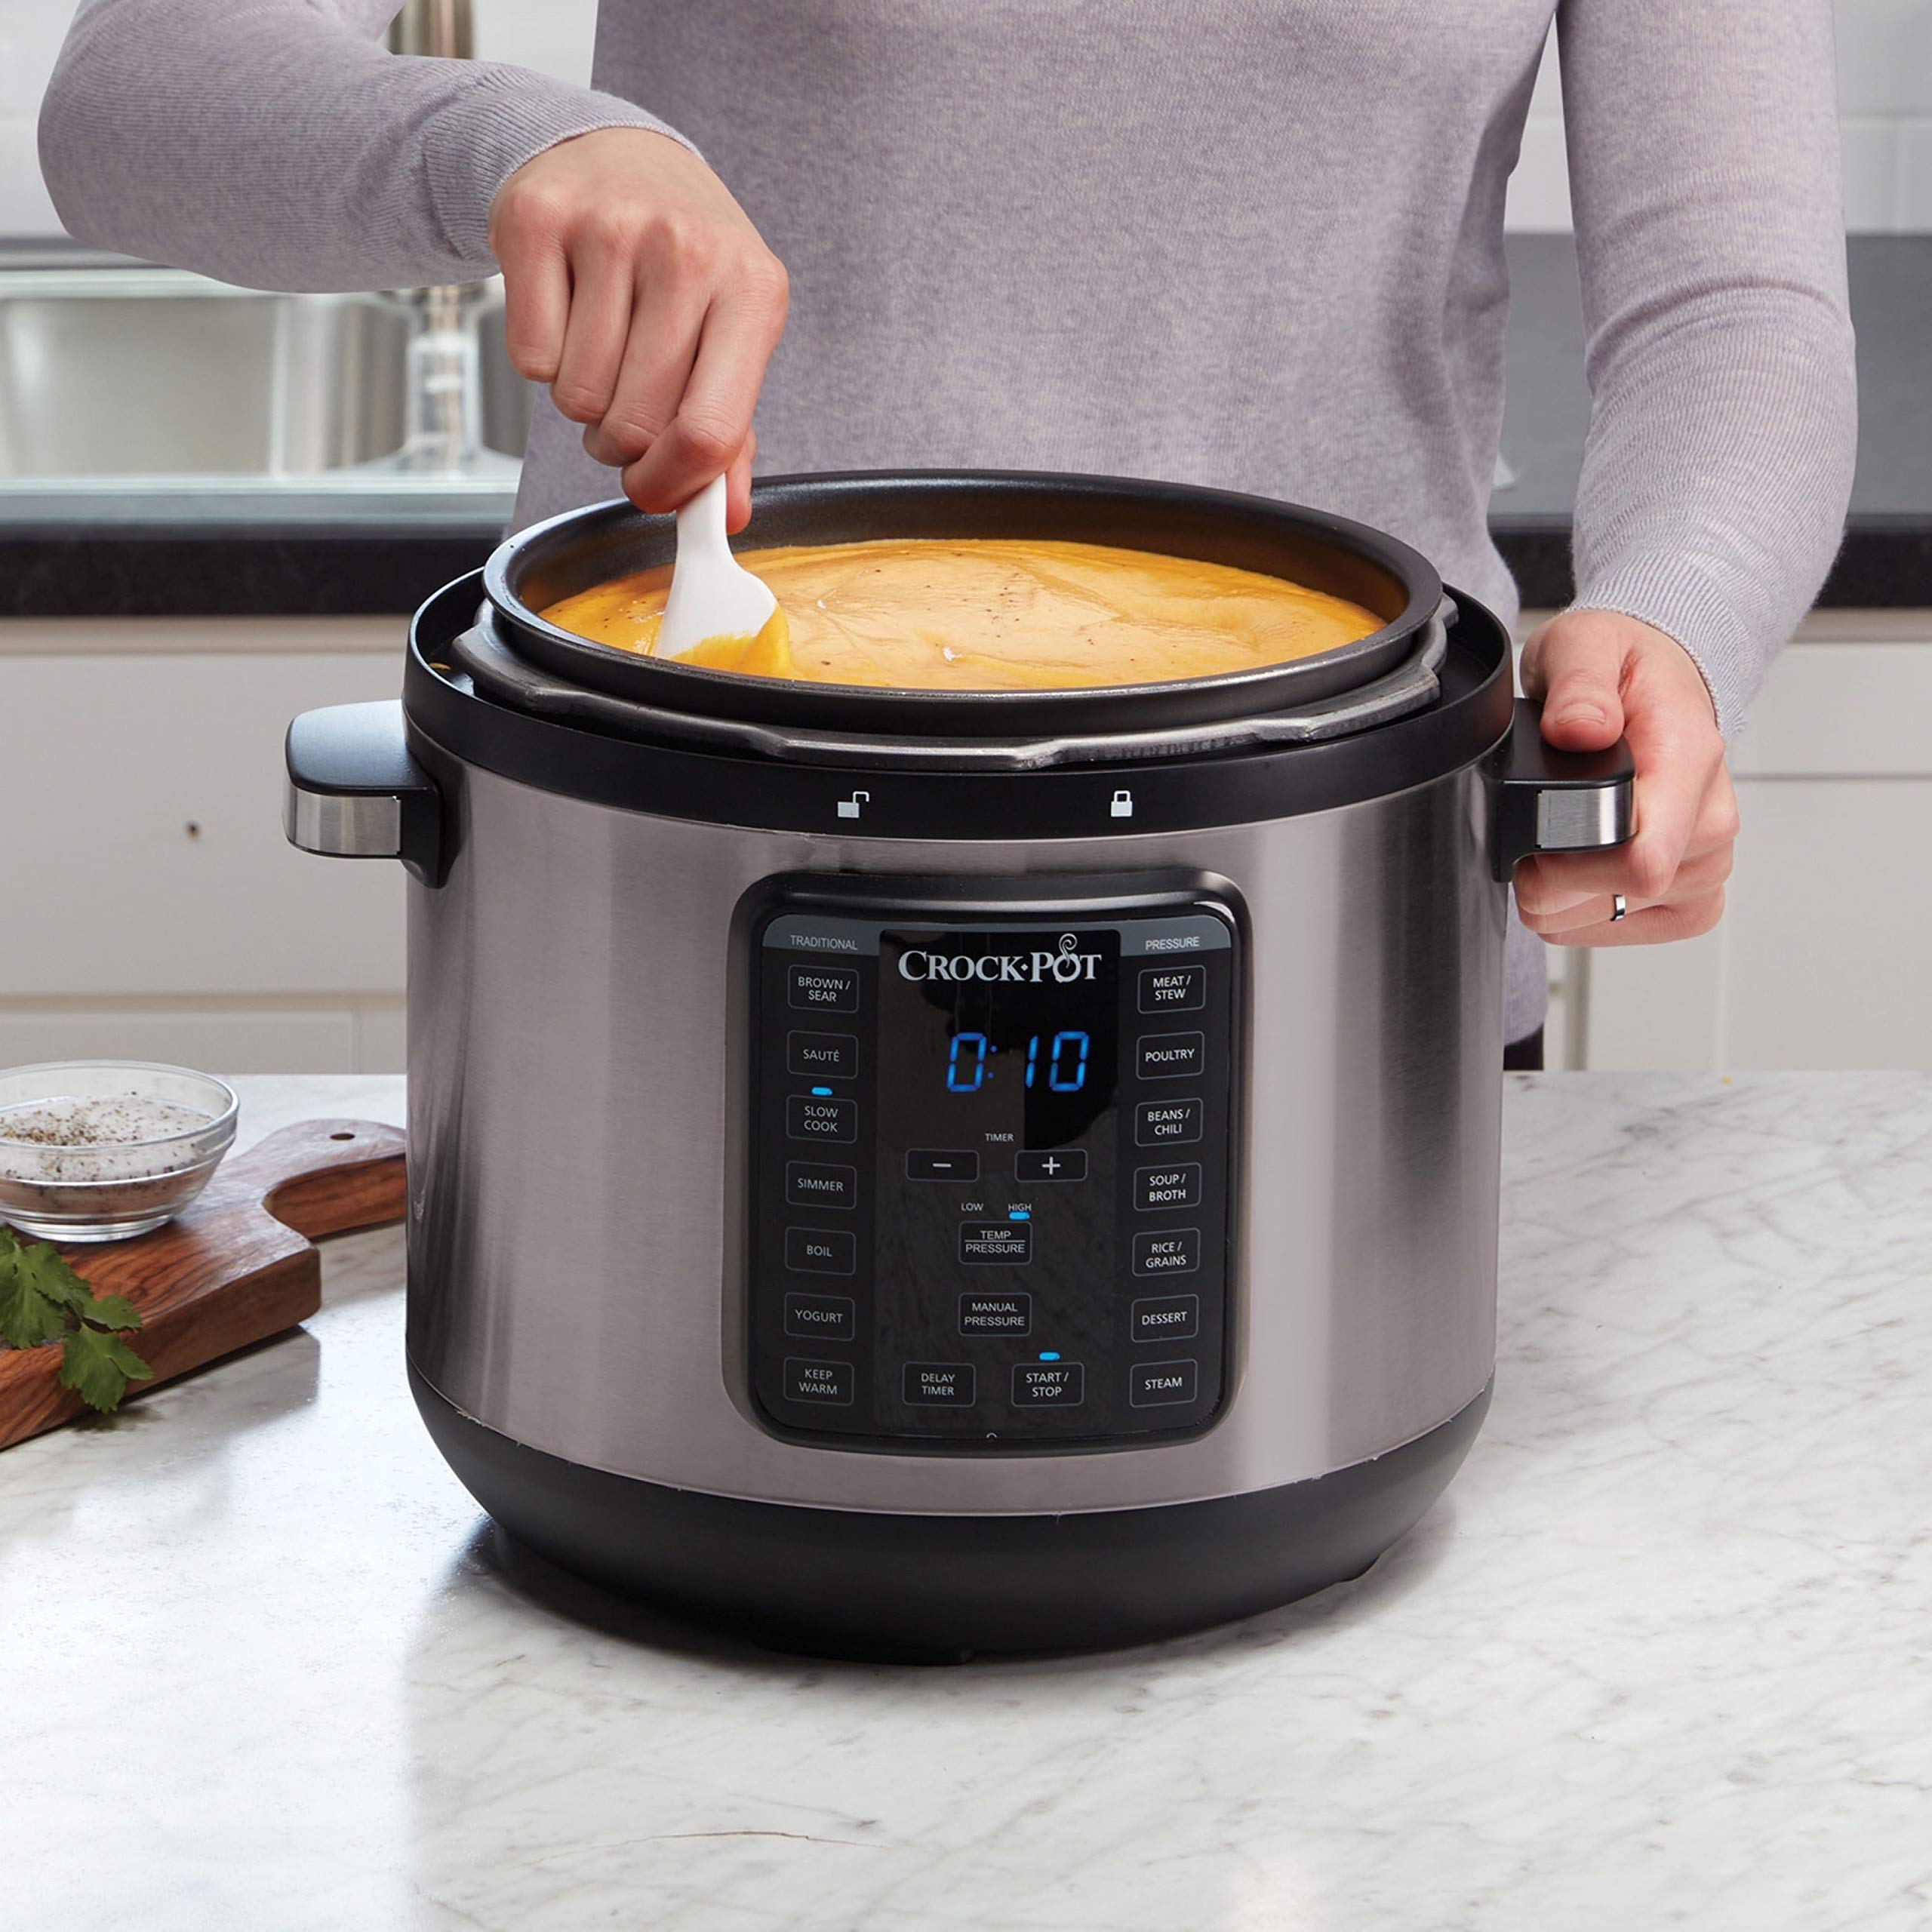 Crock-Pot 8-Quart Multi-Use XL Express Crock Programmable Slow Cooker and Pressure Cooker with Manual Pressure, Boil & Simmer, Black Stainless by Crock-Pot (Image #5)